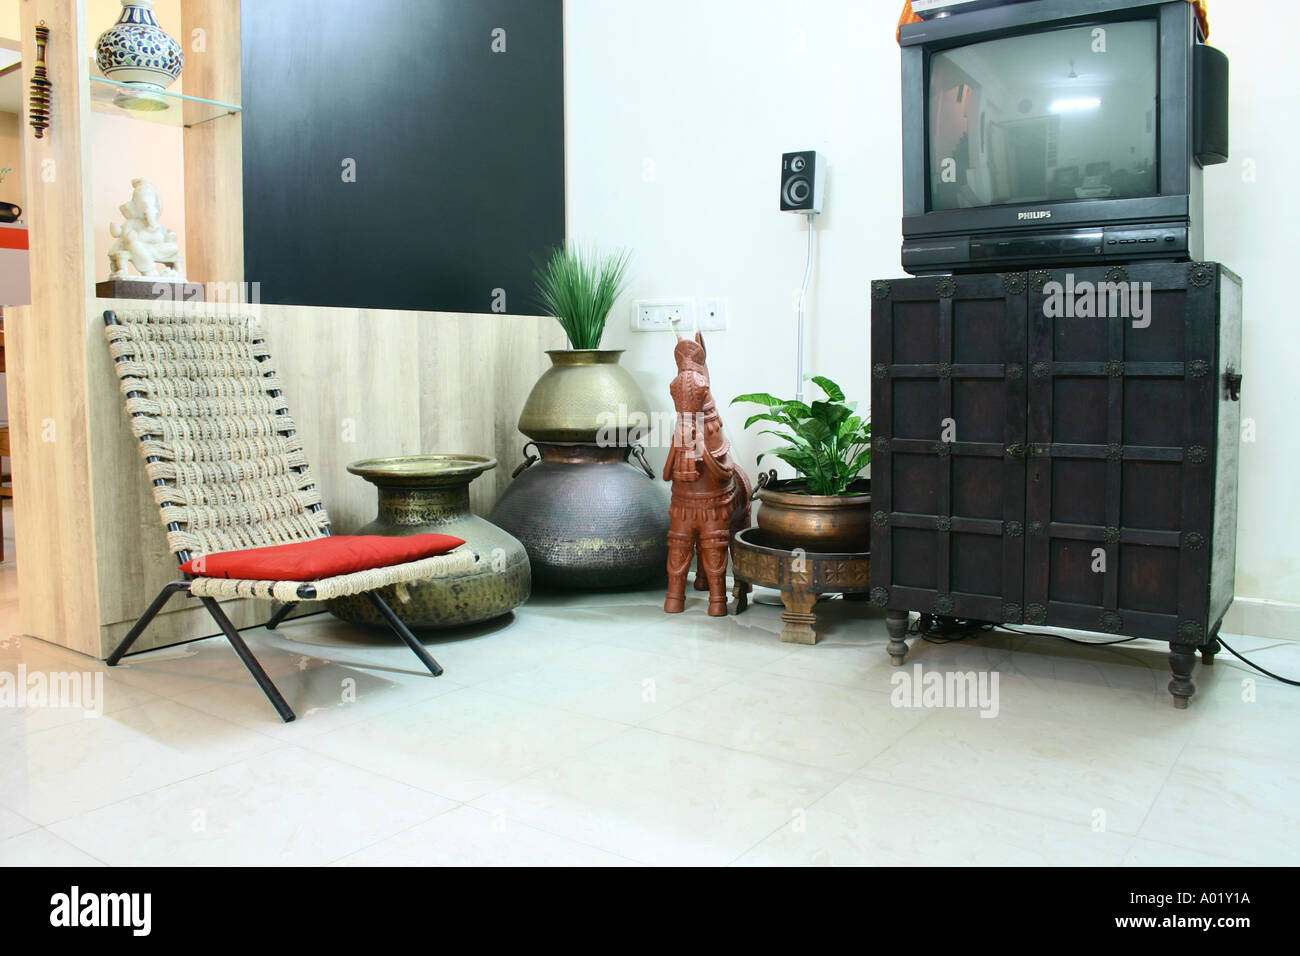 chairs for living room india sale interior of urban indian plastic cane chair red cushion television pots bankura horse wood cabinet below tv